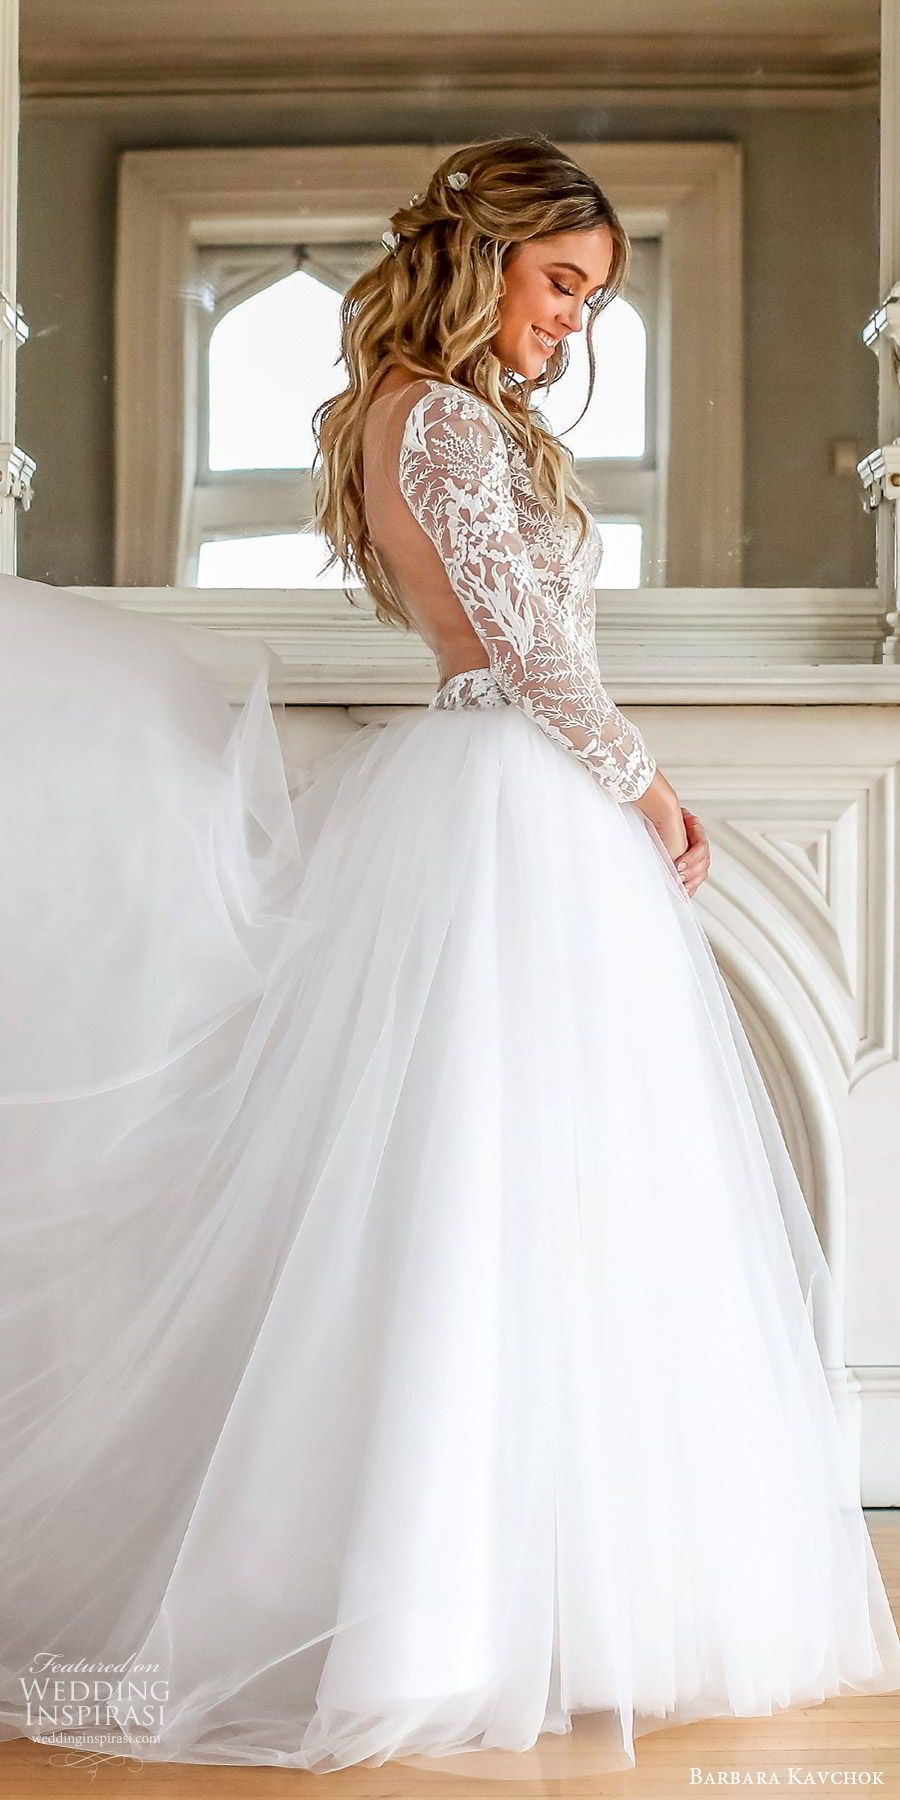 barbara kavchok fall 2019 bridal illusion long sleeves sheer lace bodice a line ball gown wedding dress (13) zsv open back chapel train classic romantic